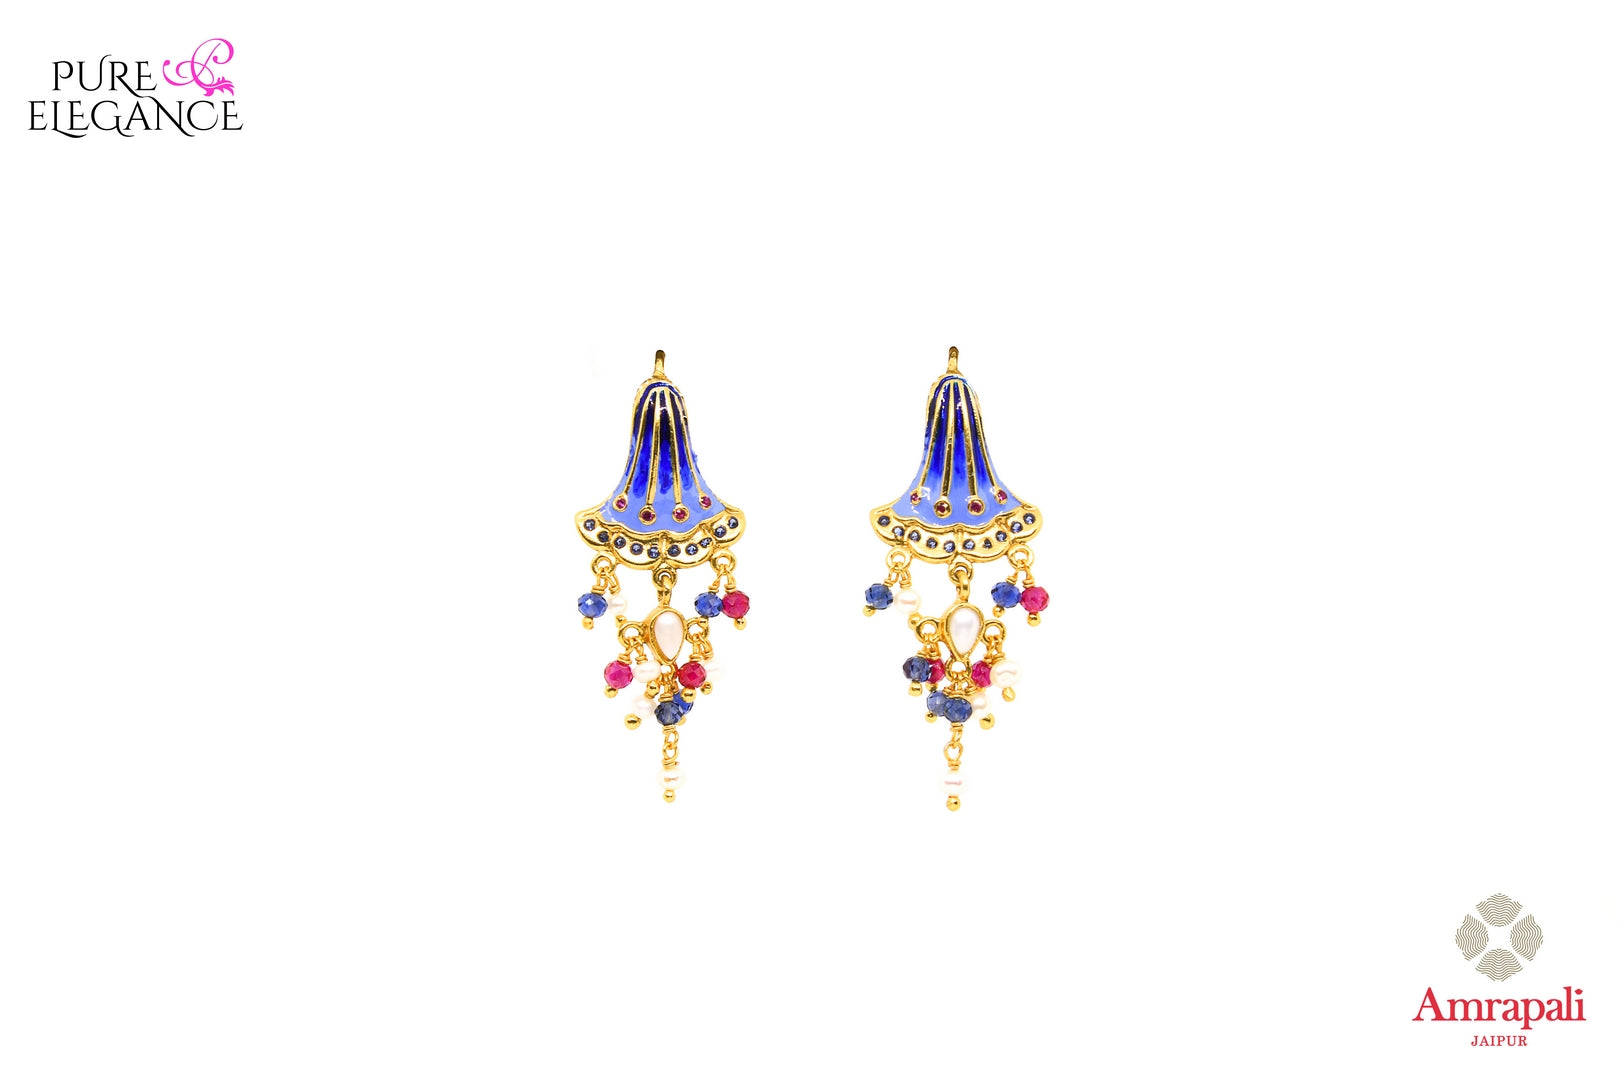 Buy silver gold plated enamel earrings online in USA with colorful beads. Add a unique touch to your Indian look at special occasions with these alluring earrings. Shop more such exquisite Amrapali jewelry in USA at Pure Elegance, you can visit our exclusive fashion store in USA or shop online.-front look